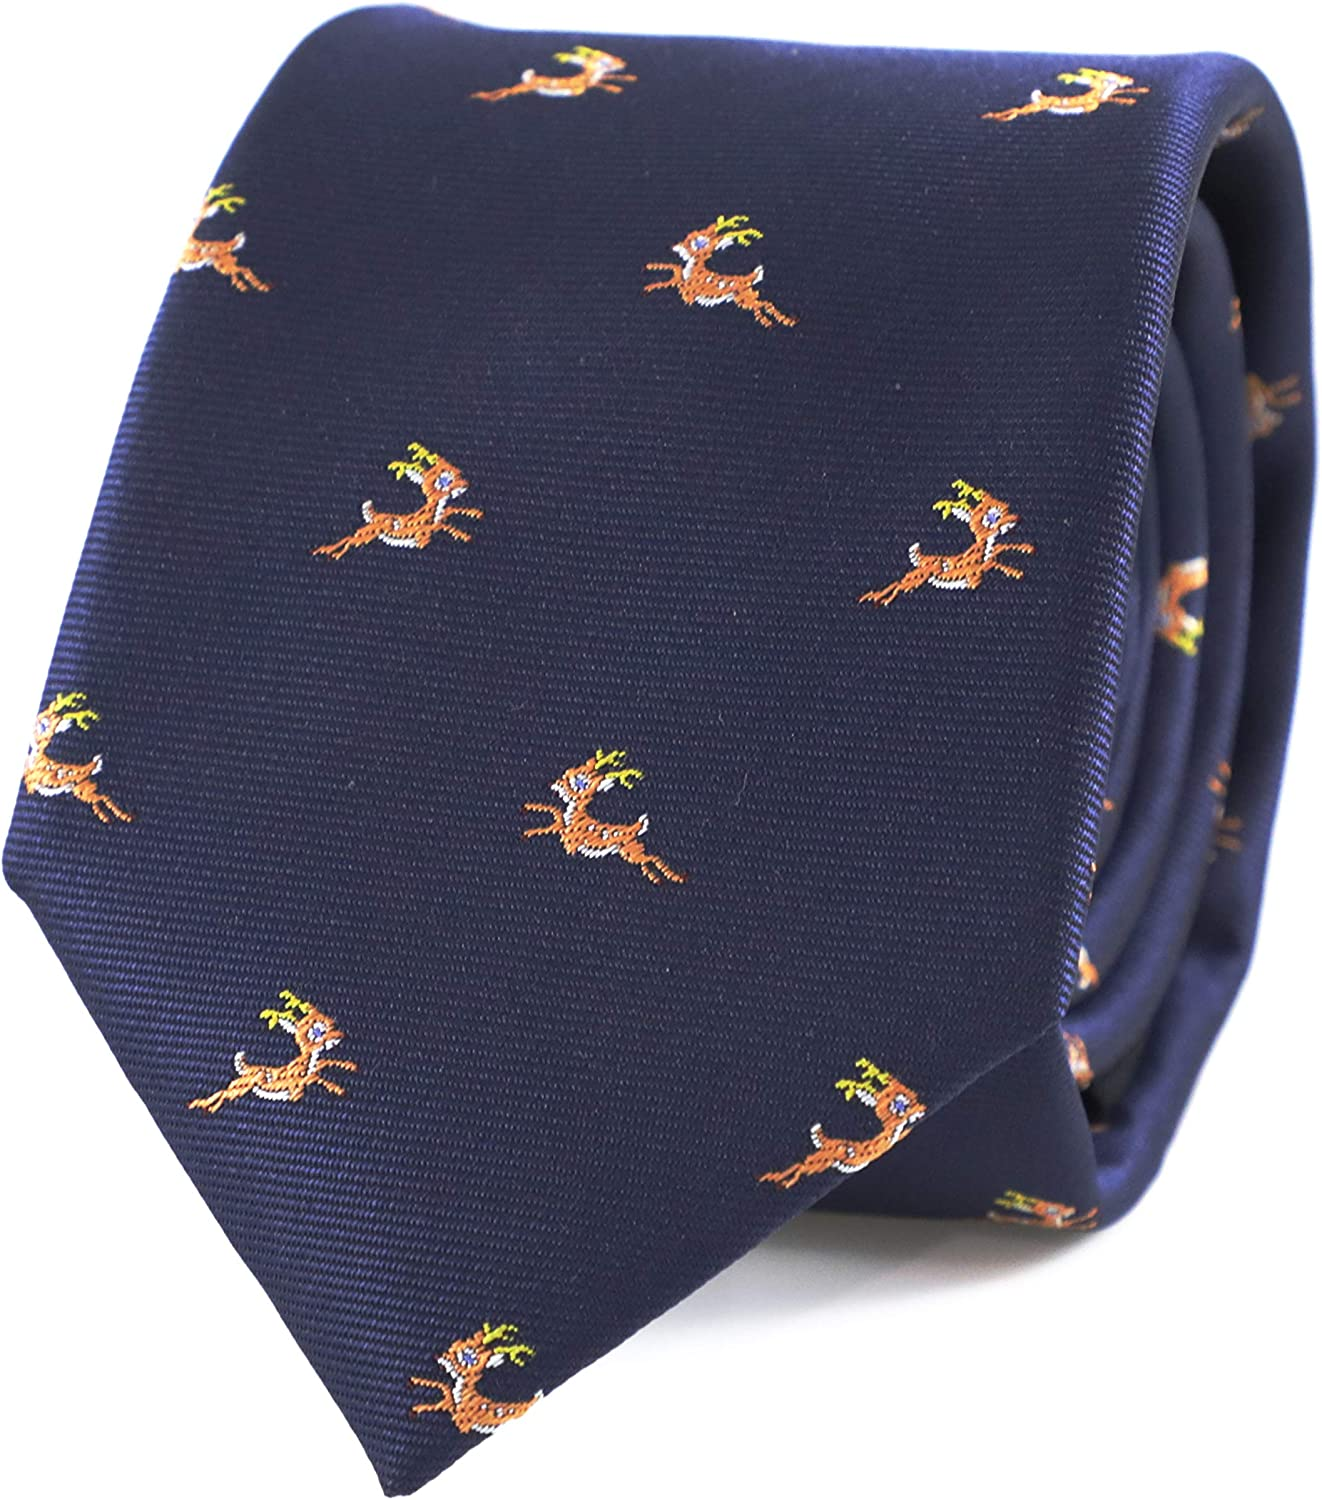 MENDEPOT Animal Pattern Necktie With Gift Box Sea Animal Pattern Tie Fathers Day Birthday Gift Tie